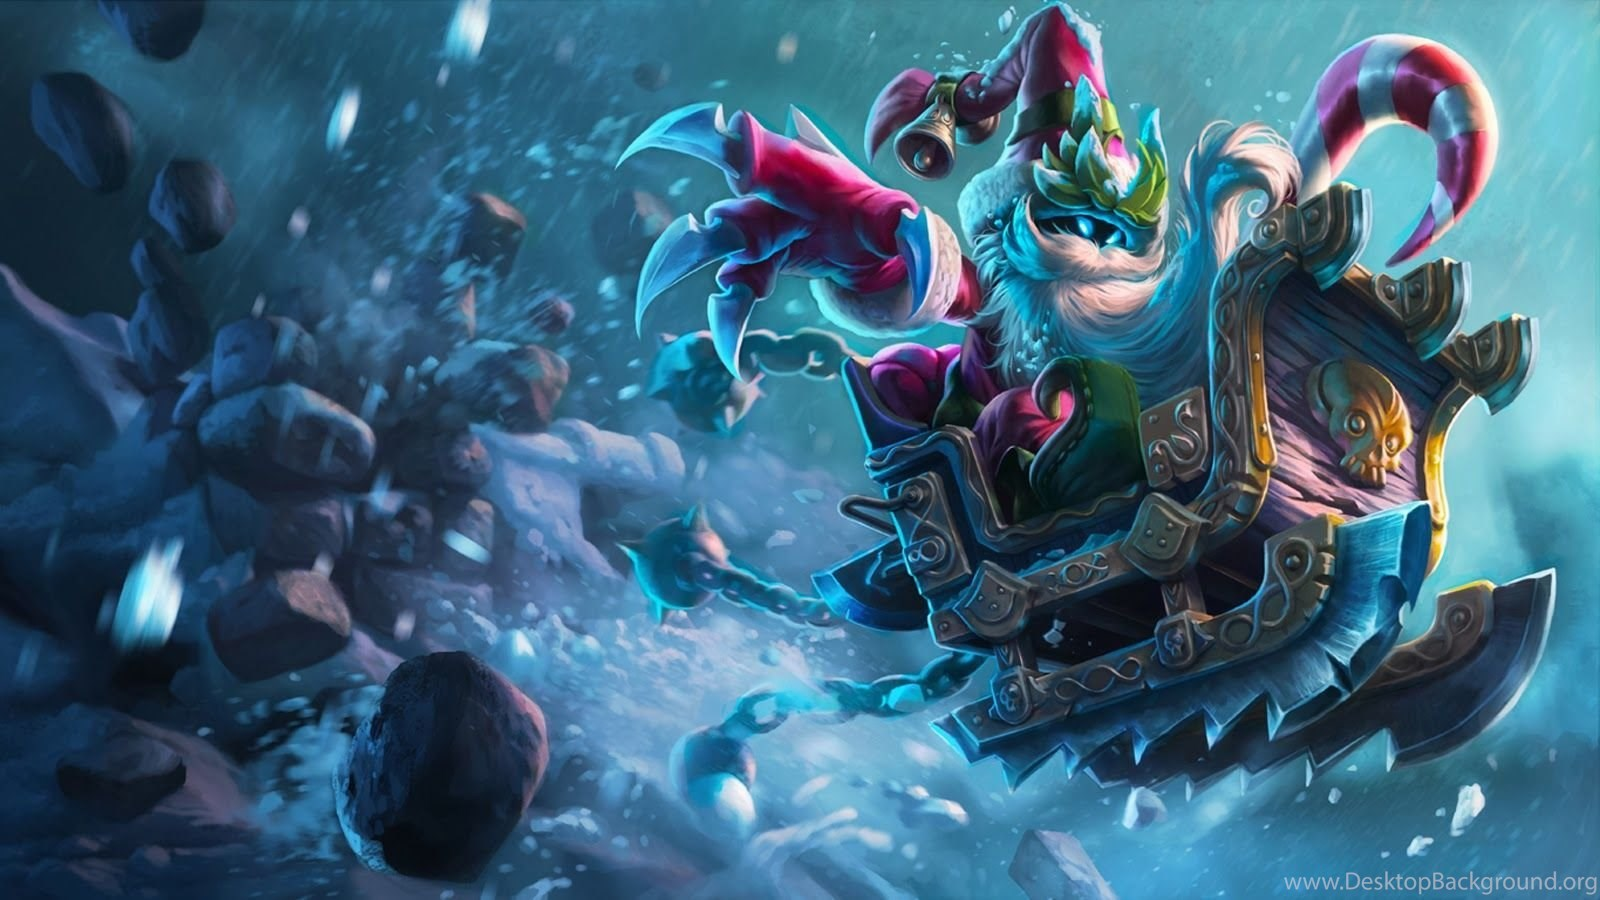 Christmas Santa Sleigh Veigar Hd Wallpaper League Of Legends